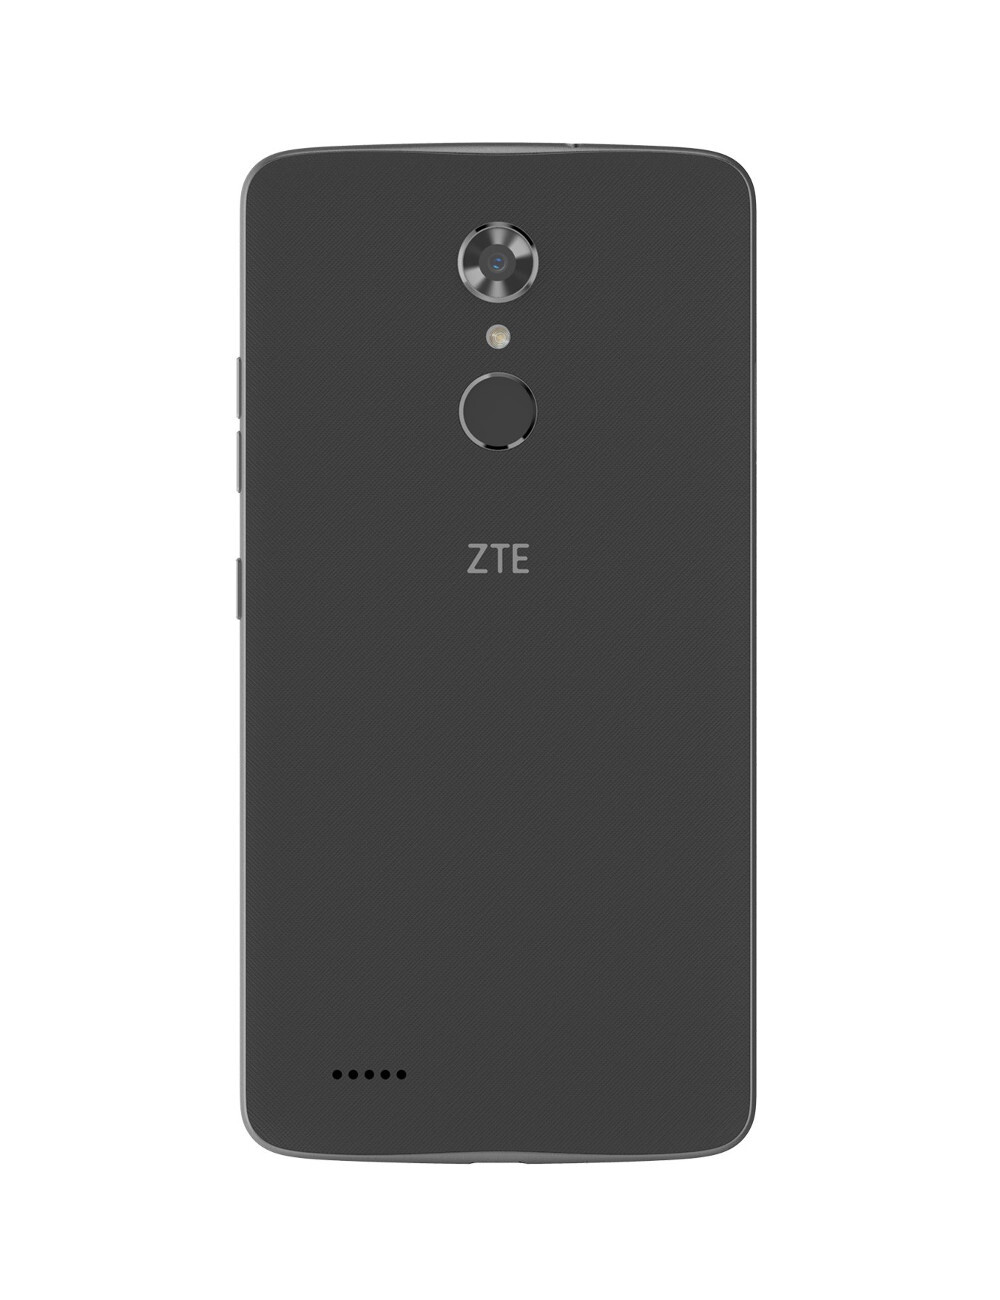 and zte max xl expandable memory wife offered her